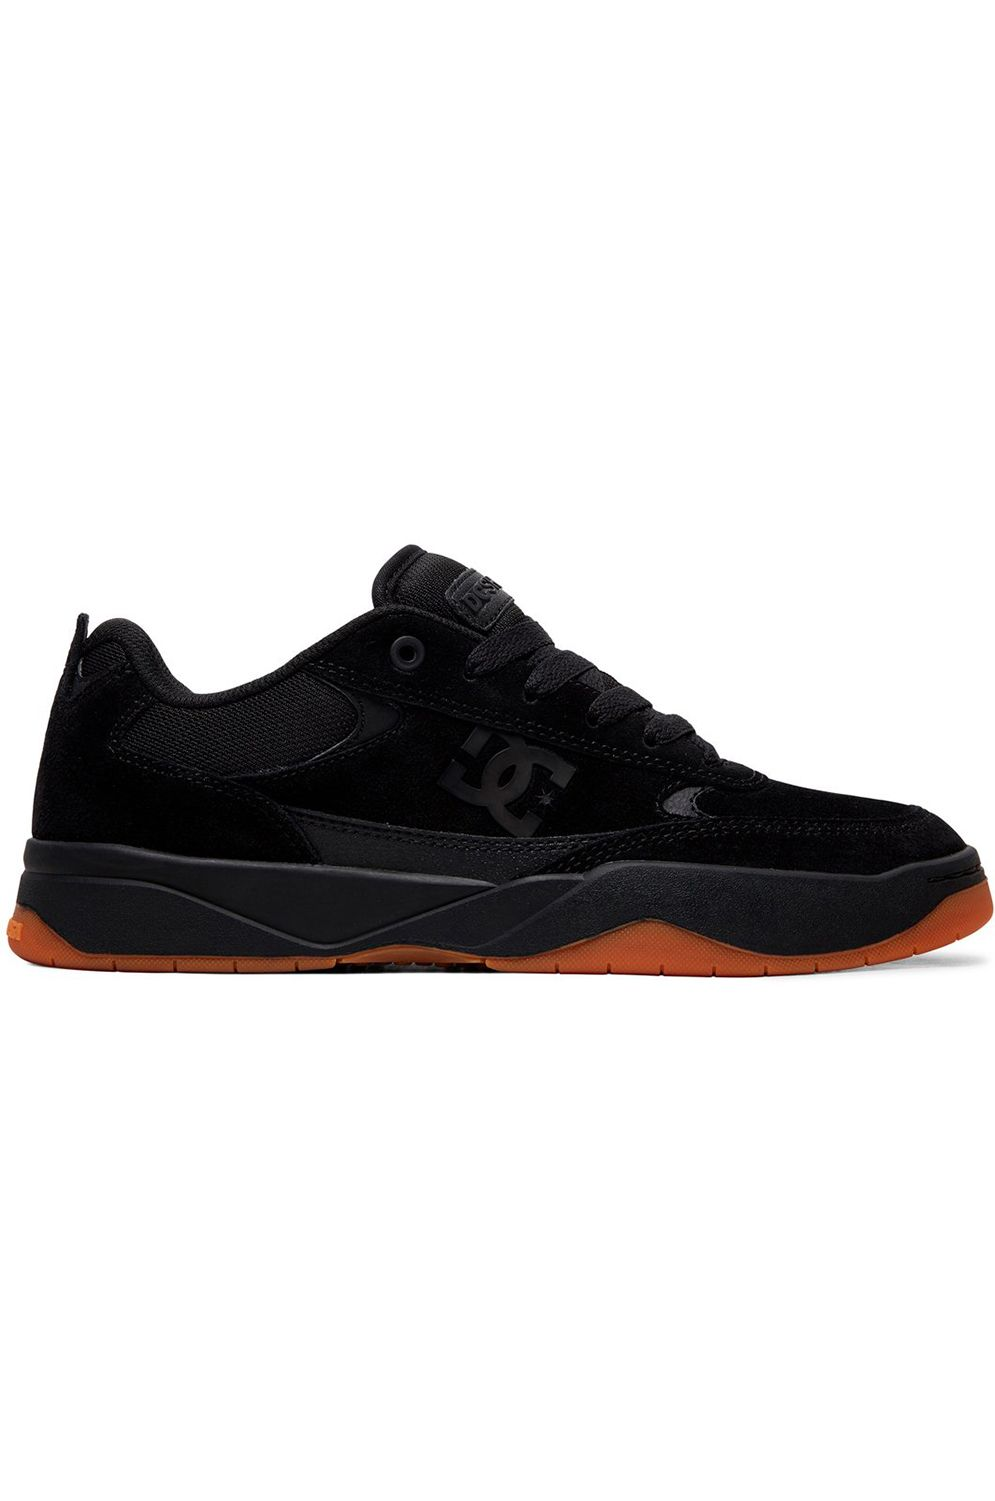 Tenis DC Shoes PENZA Black/Gum